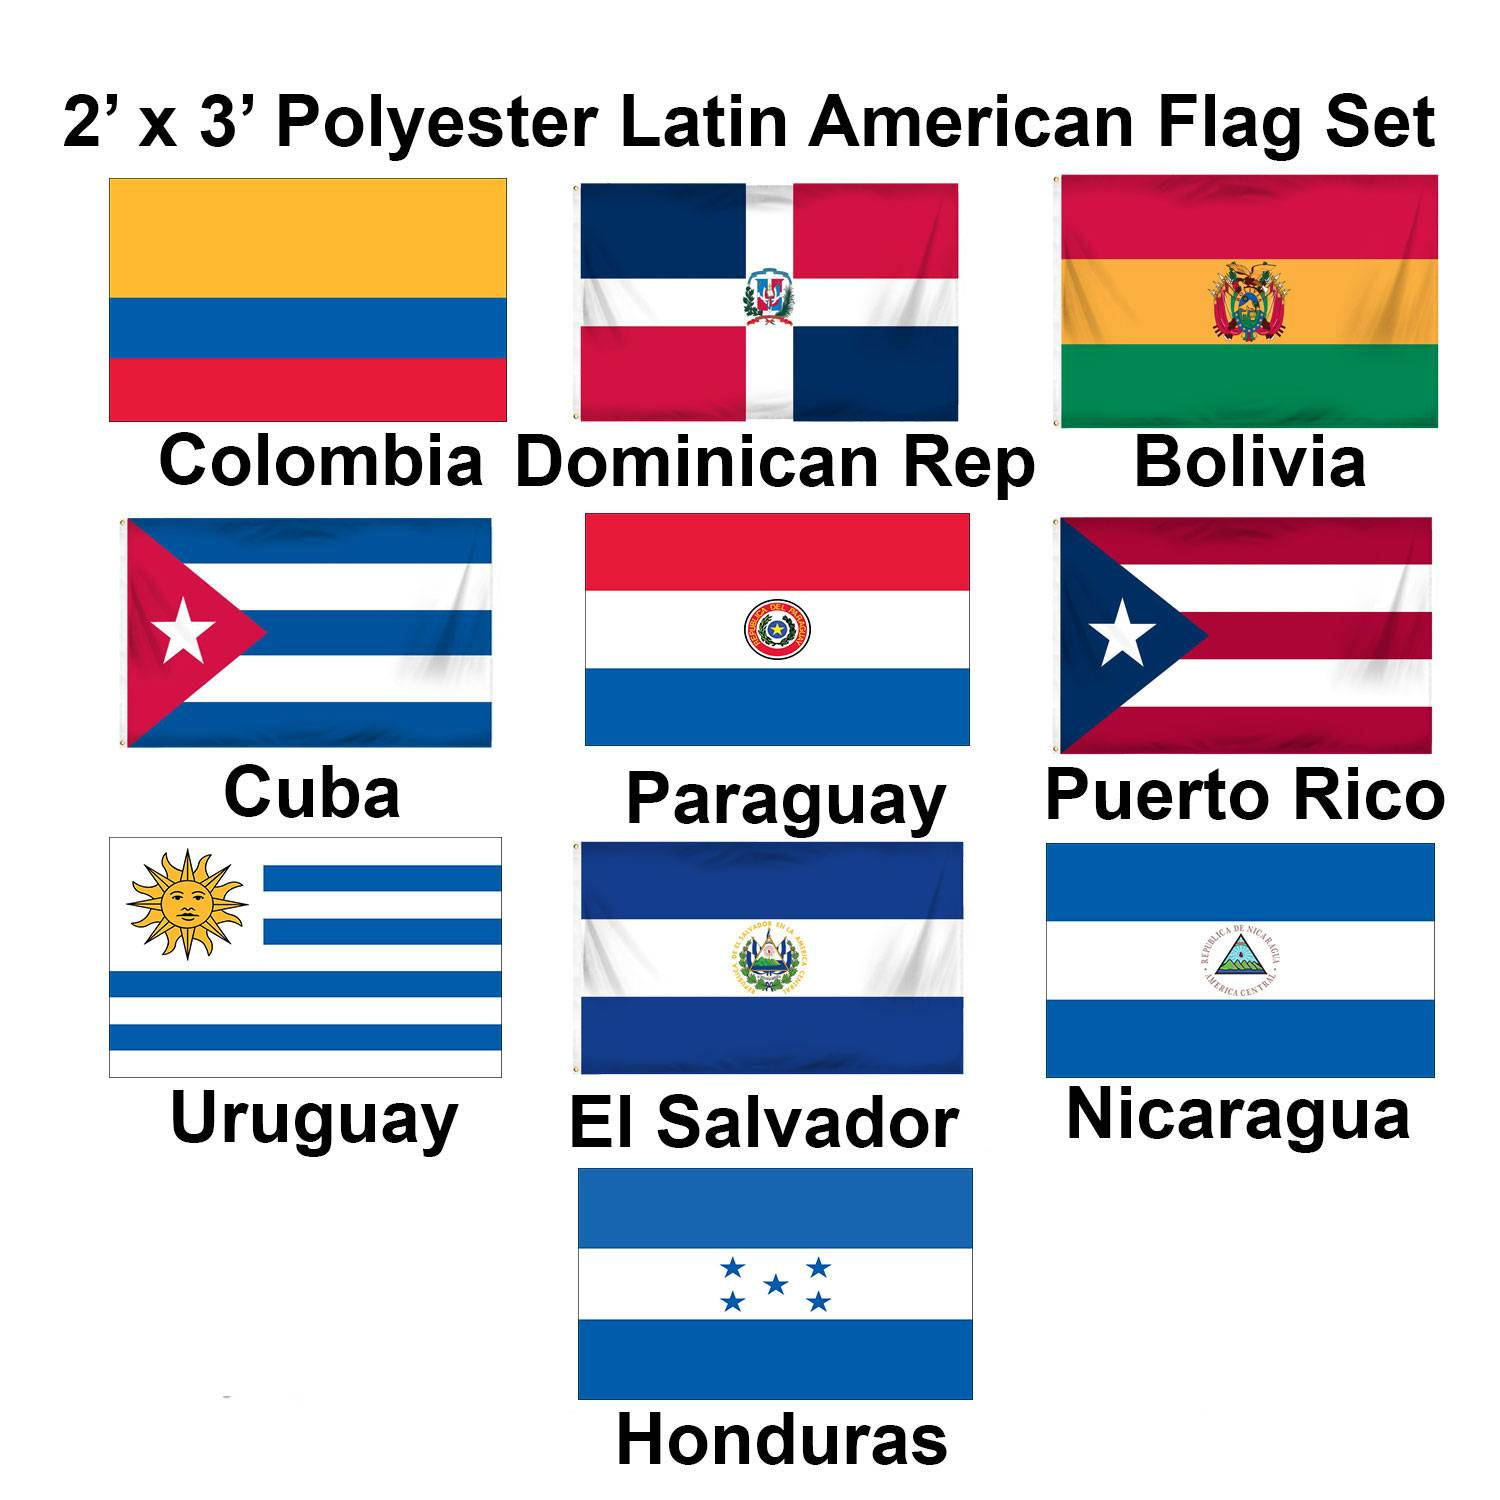 (2x3ft) Set of 10 Latin American Polyester Flags - Set 2